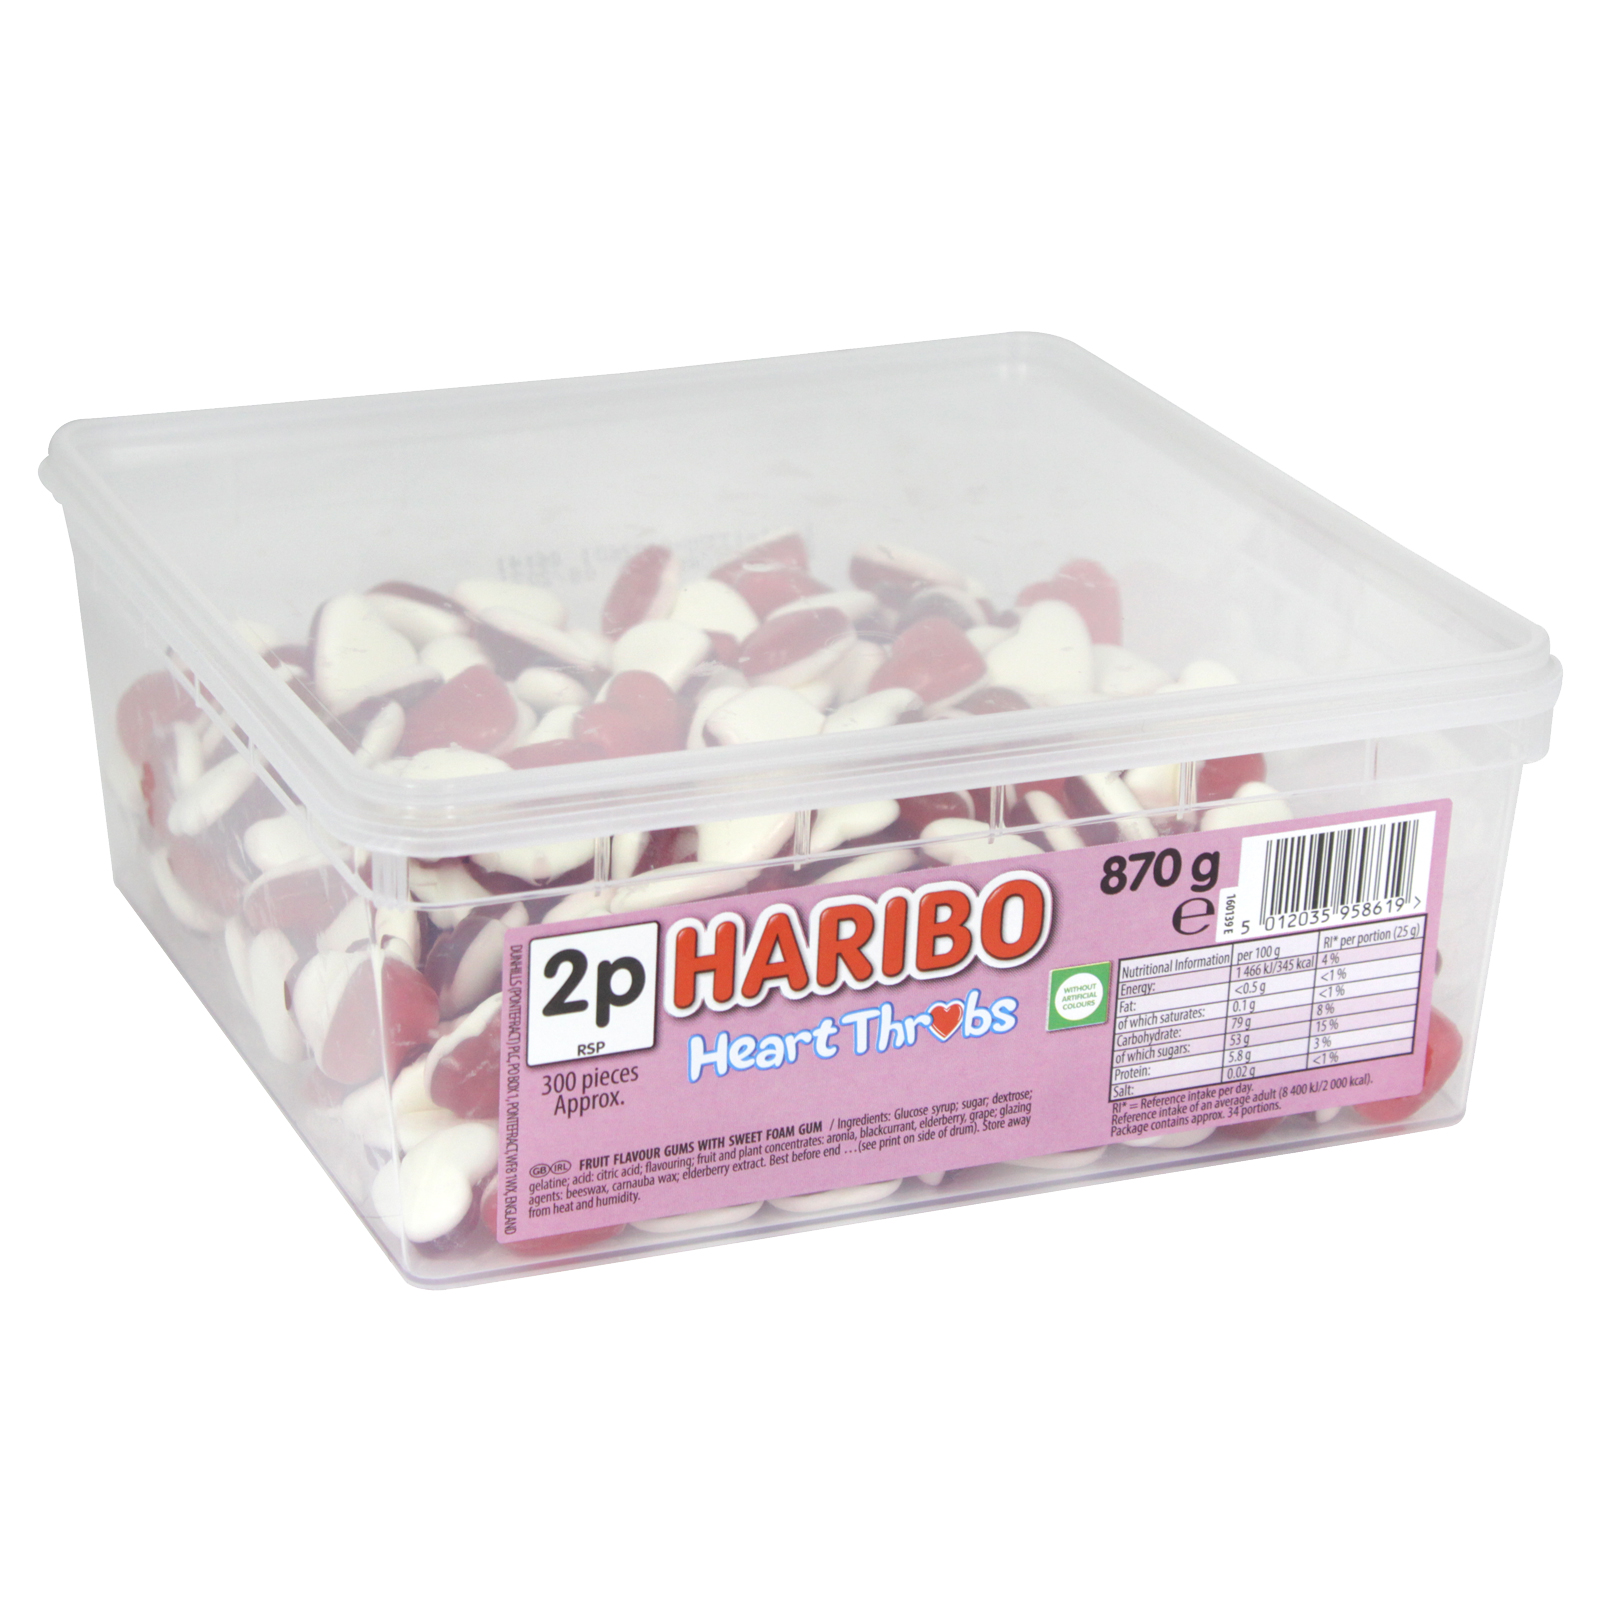 HARIBO HEART THROBS DRUM 870G 300 PIECES APPROX